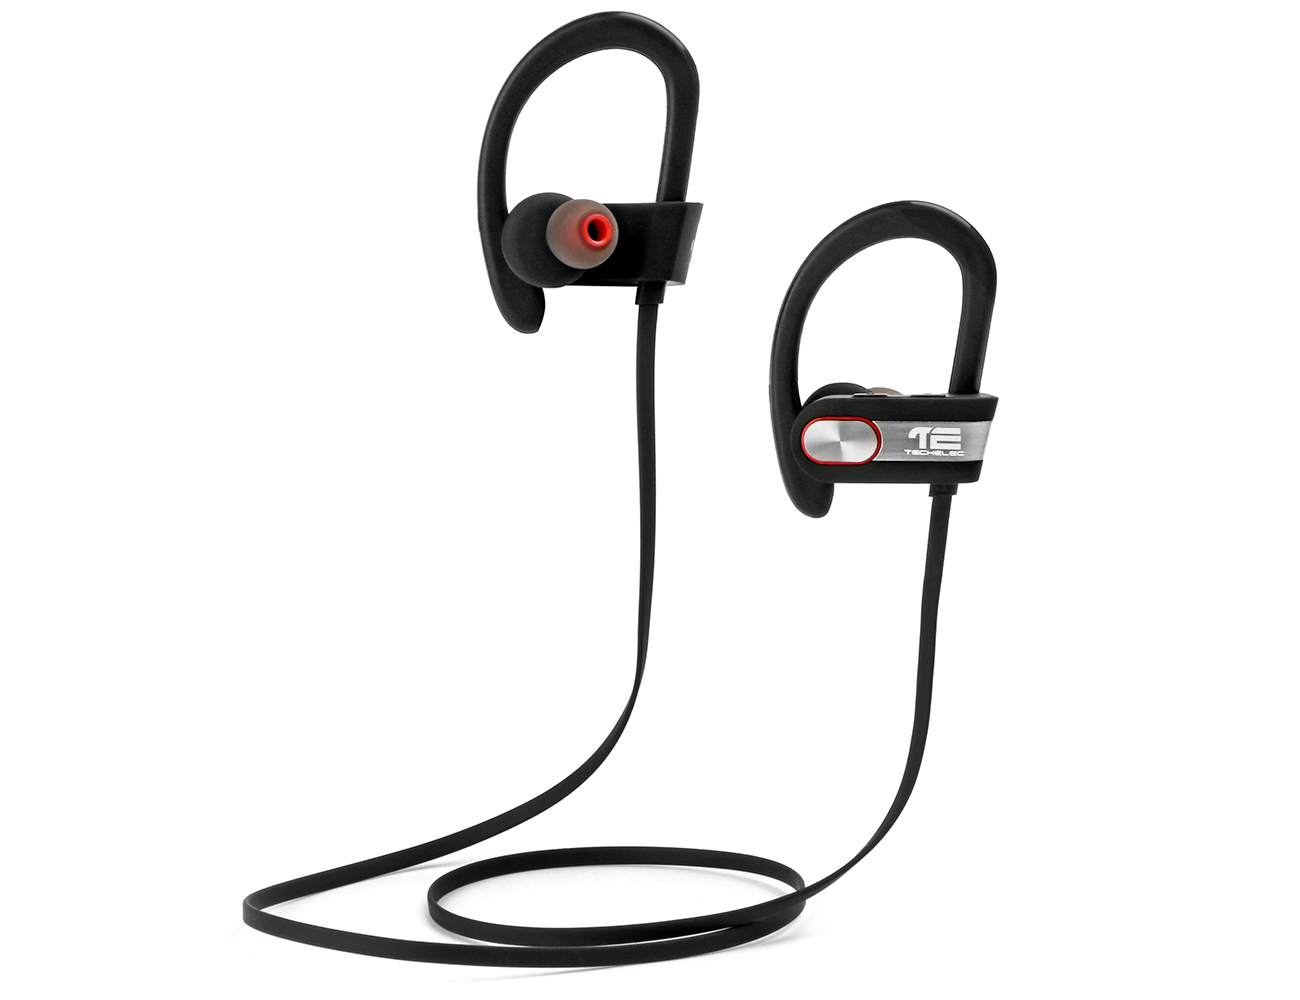 TechElec SP-X Sweatproof Sport Bluetooth Headphones With Microphone